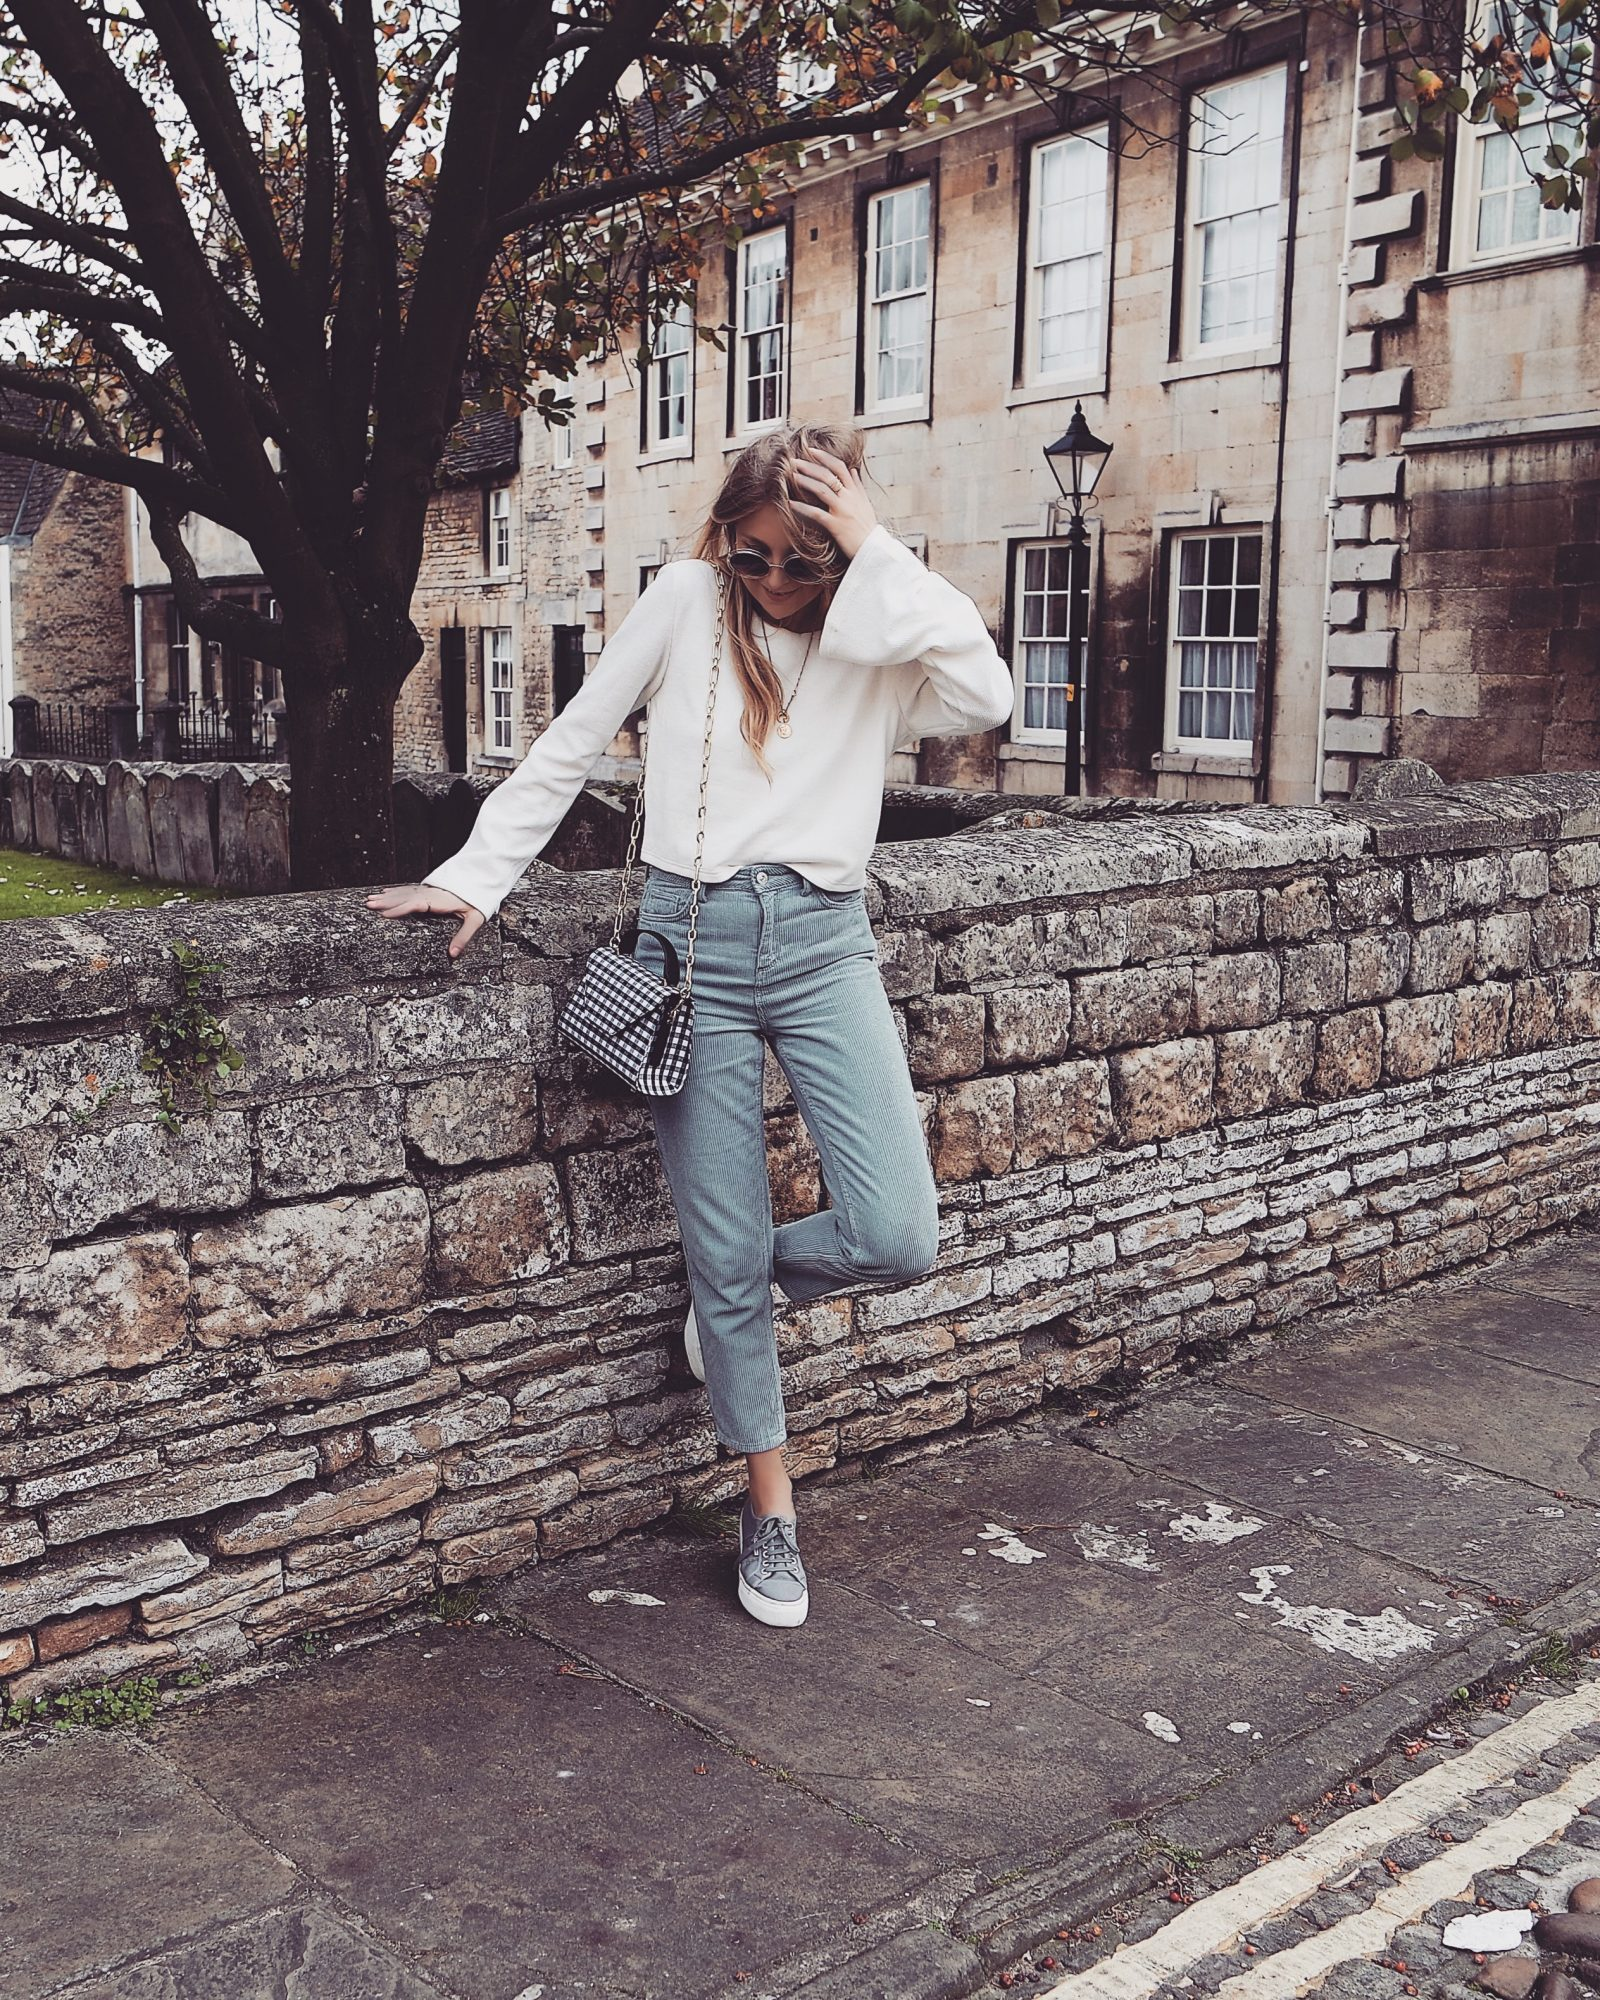 Corduroy Trousers - Street Style Inspiration